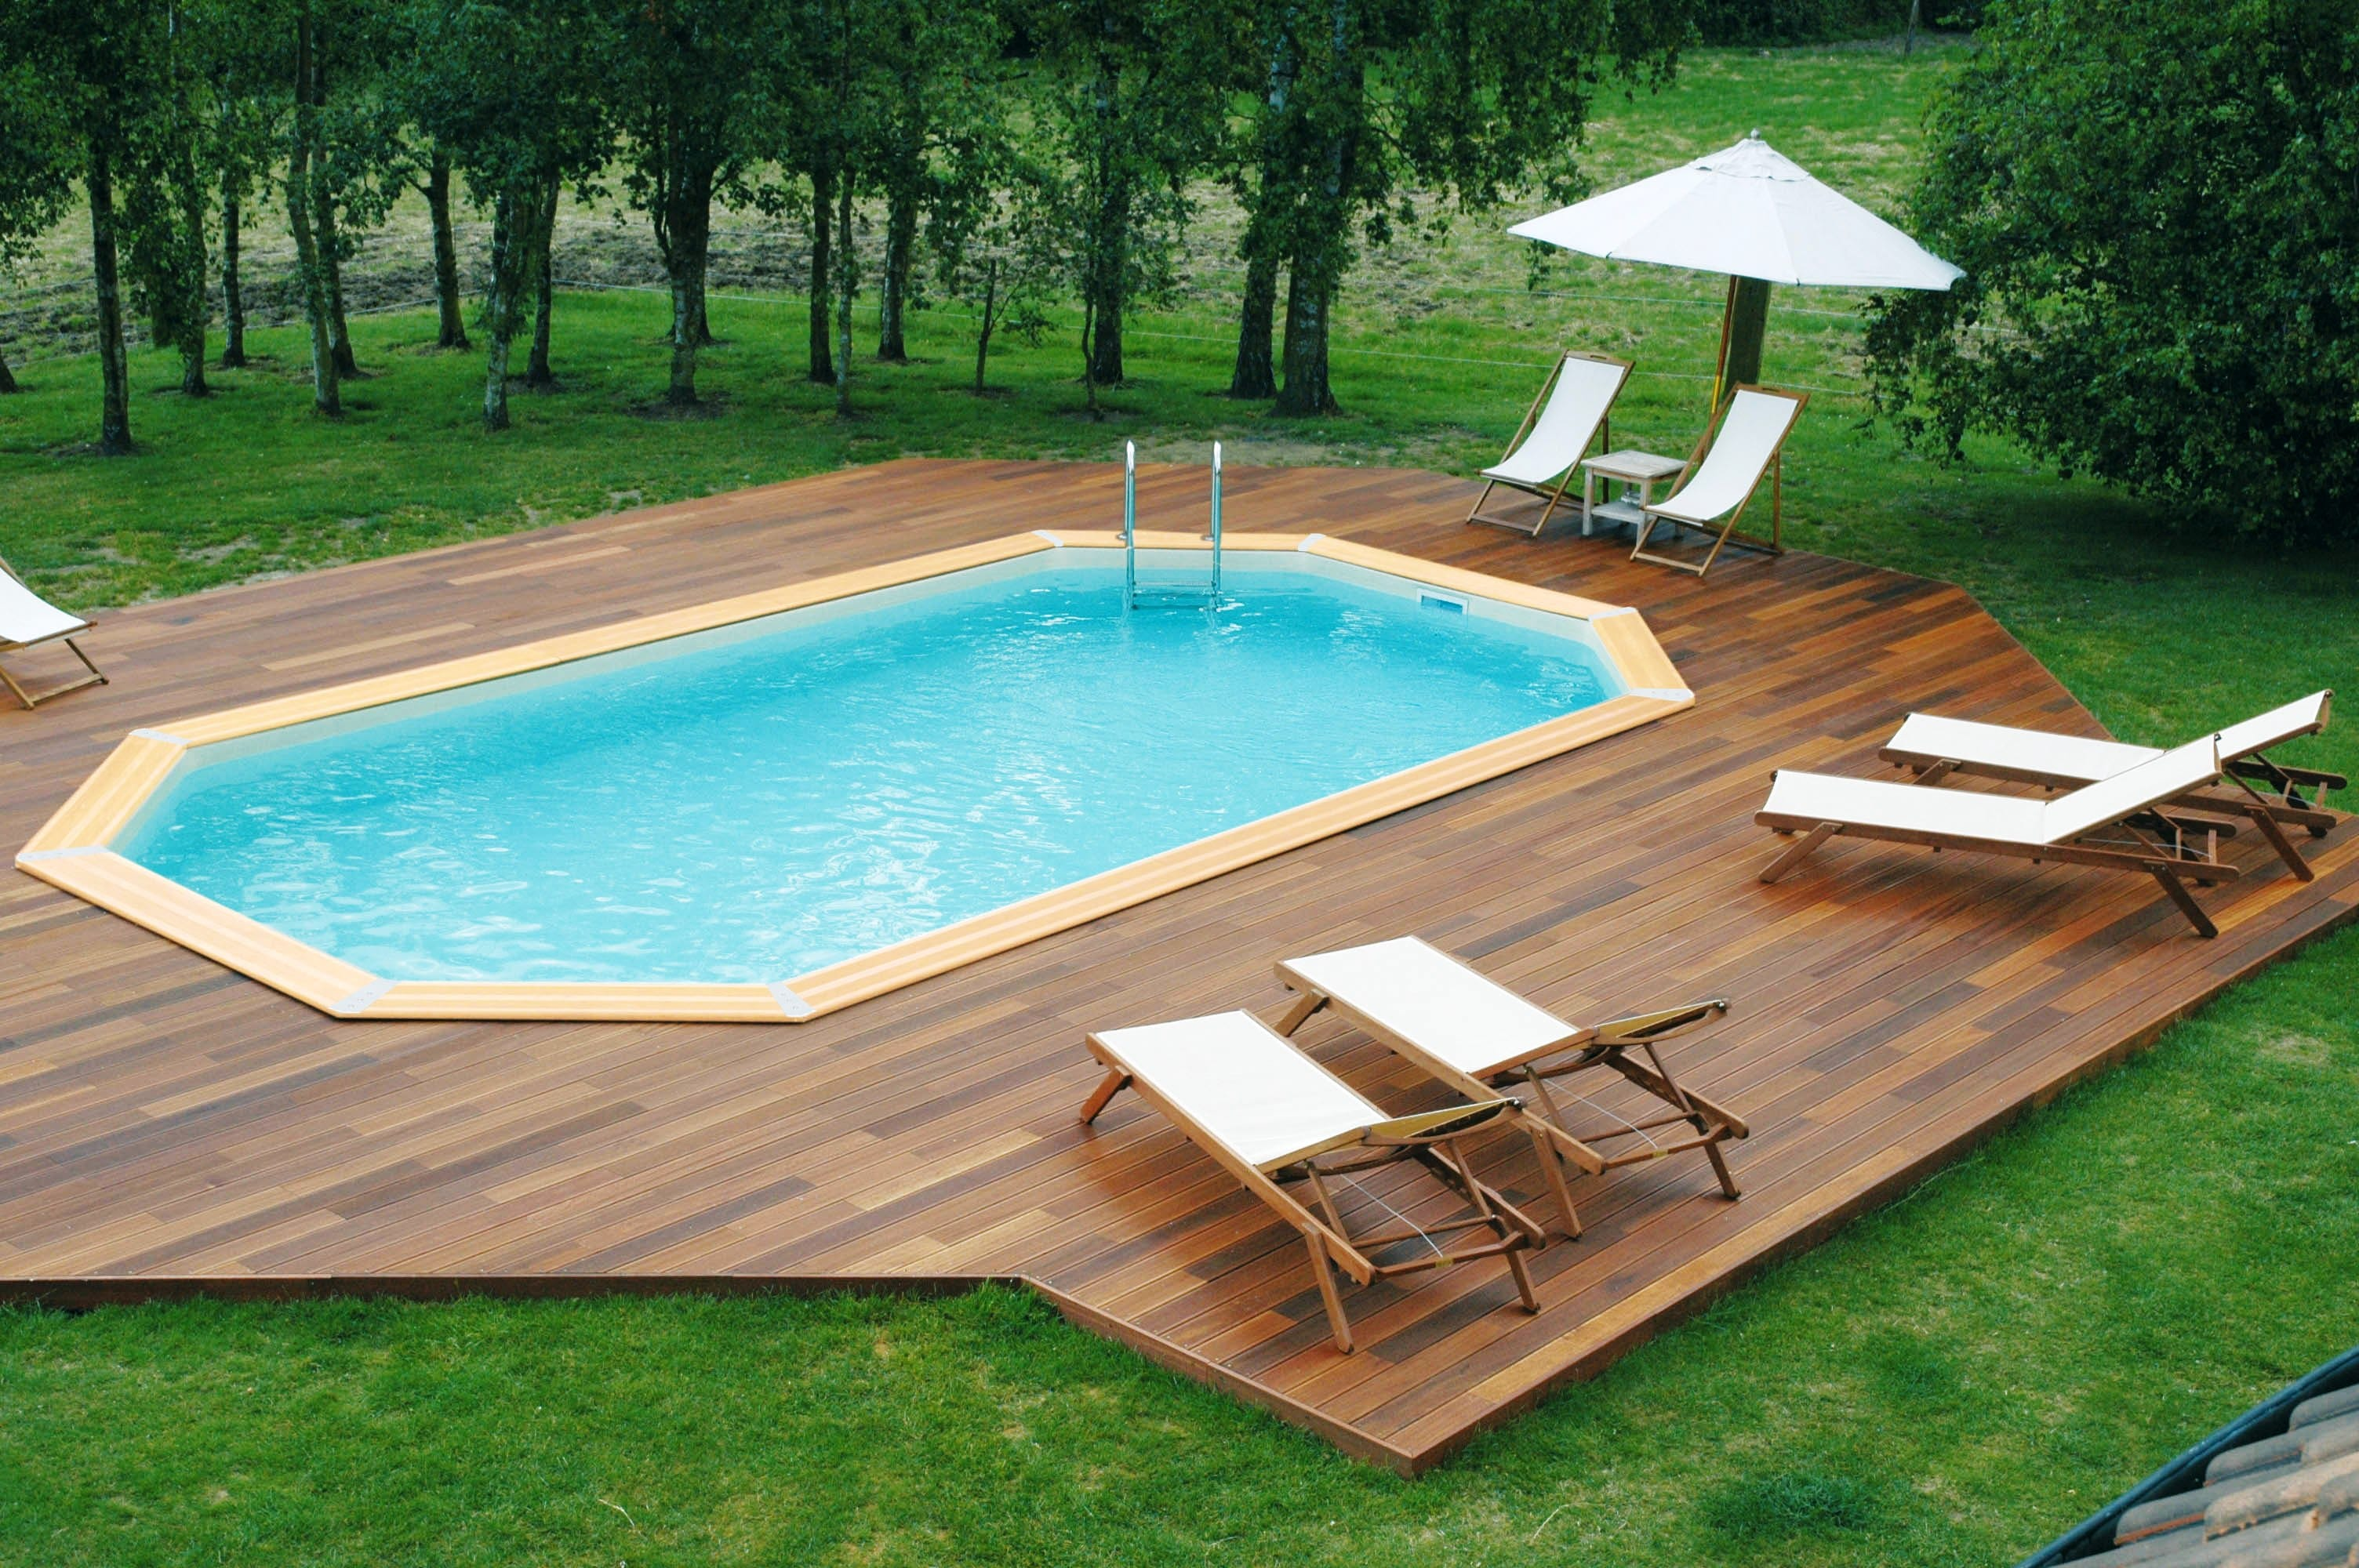 Piscine spa sauna bonnin - Piscine en bois semi enterree ...